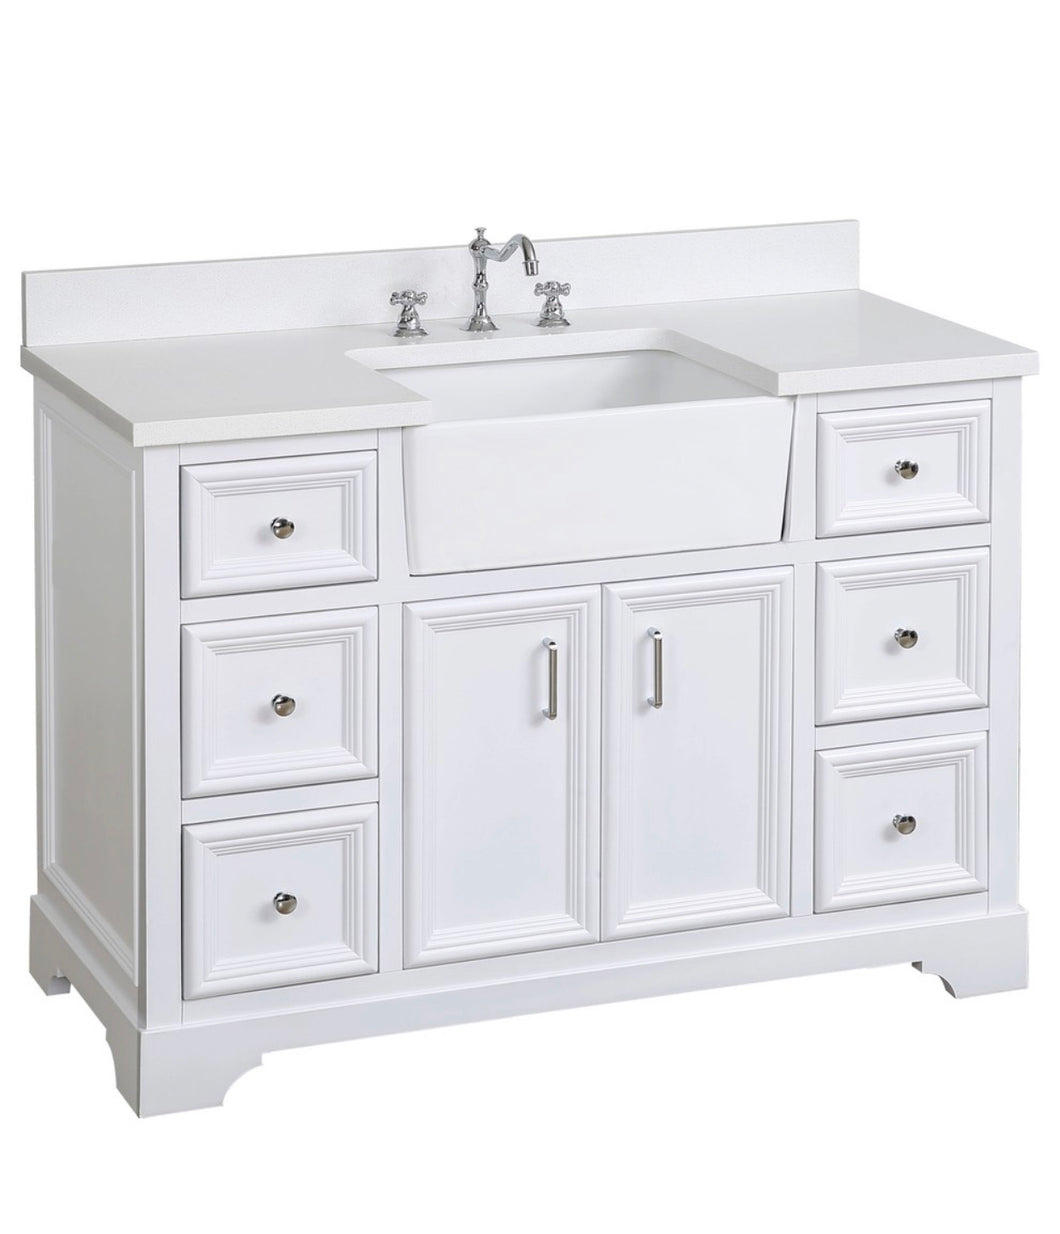 Bathroom Vanity, Base: White, 48